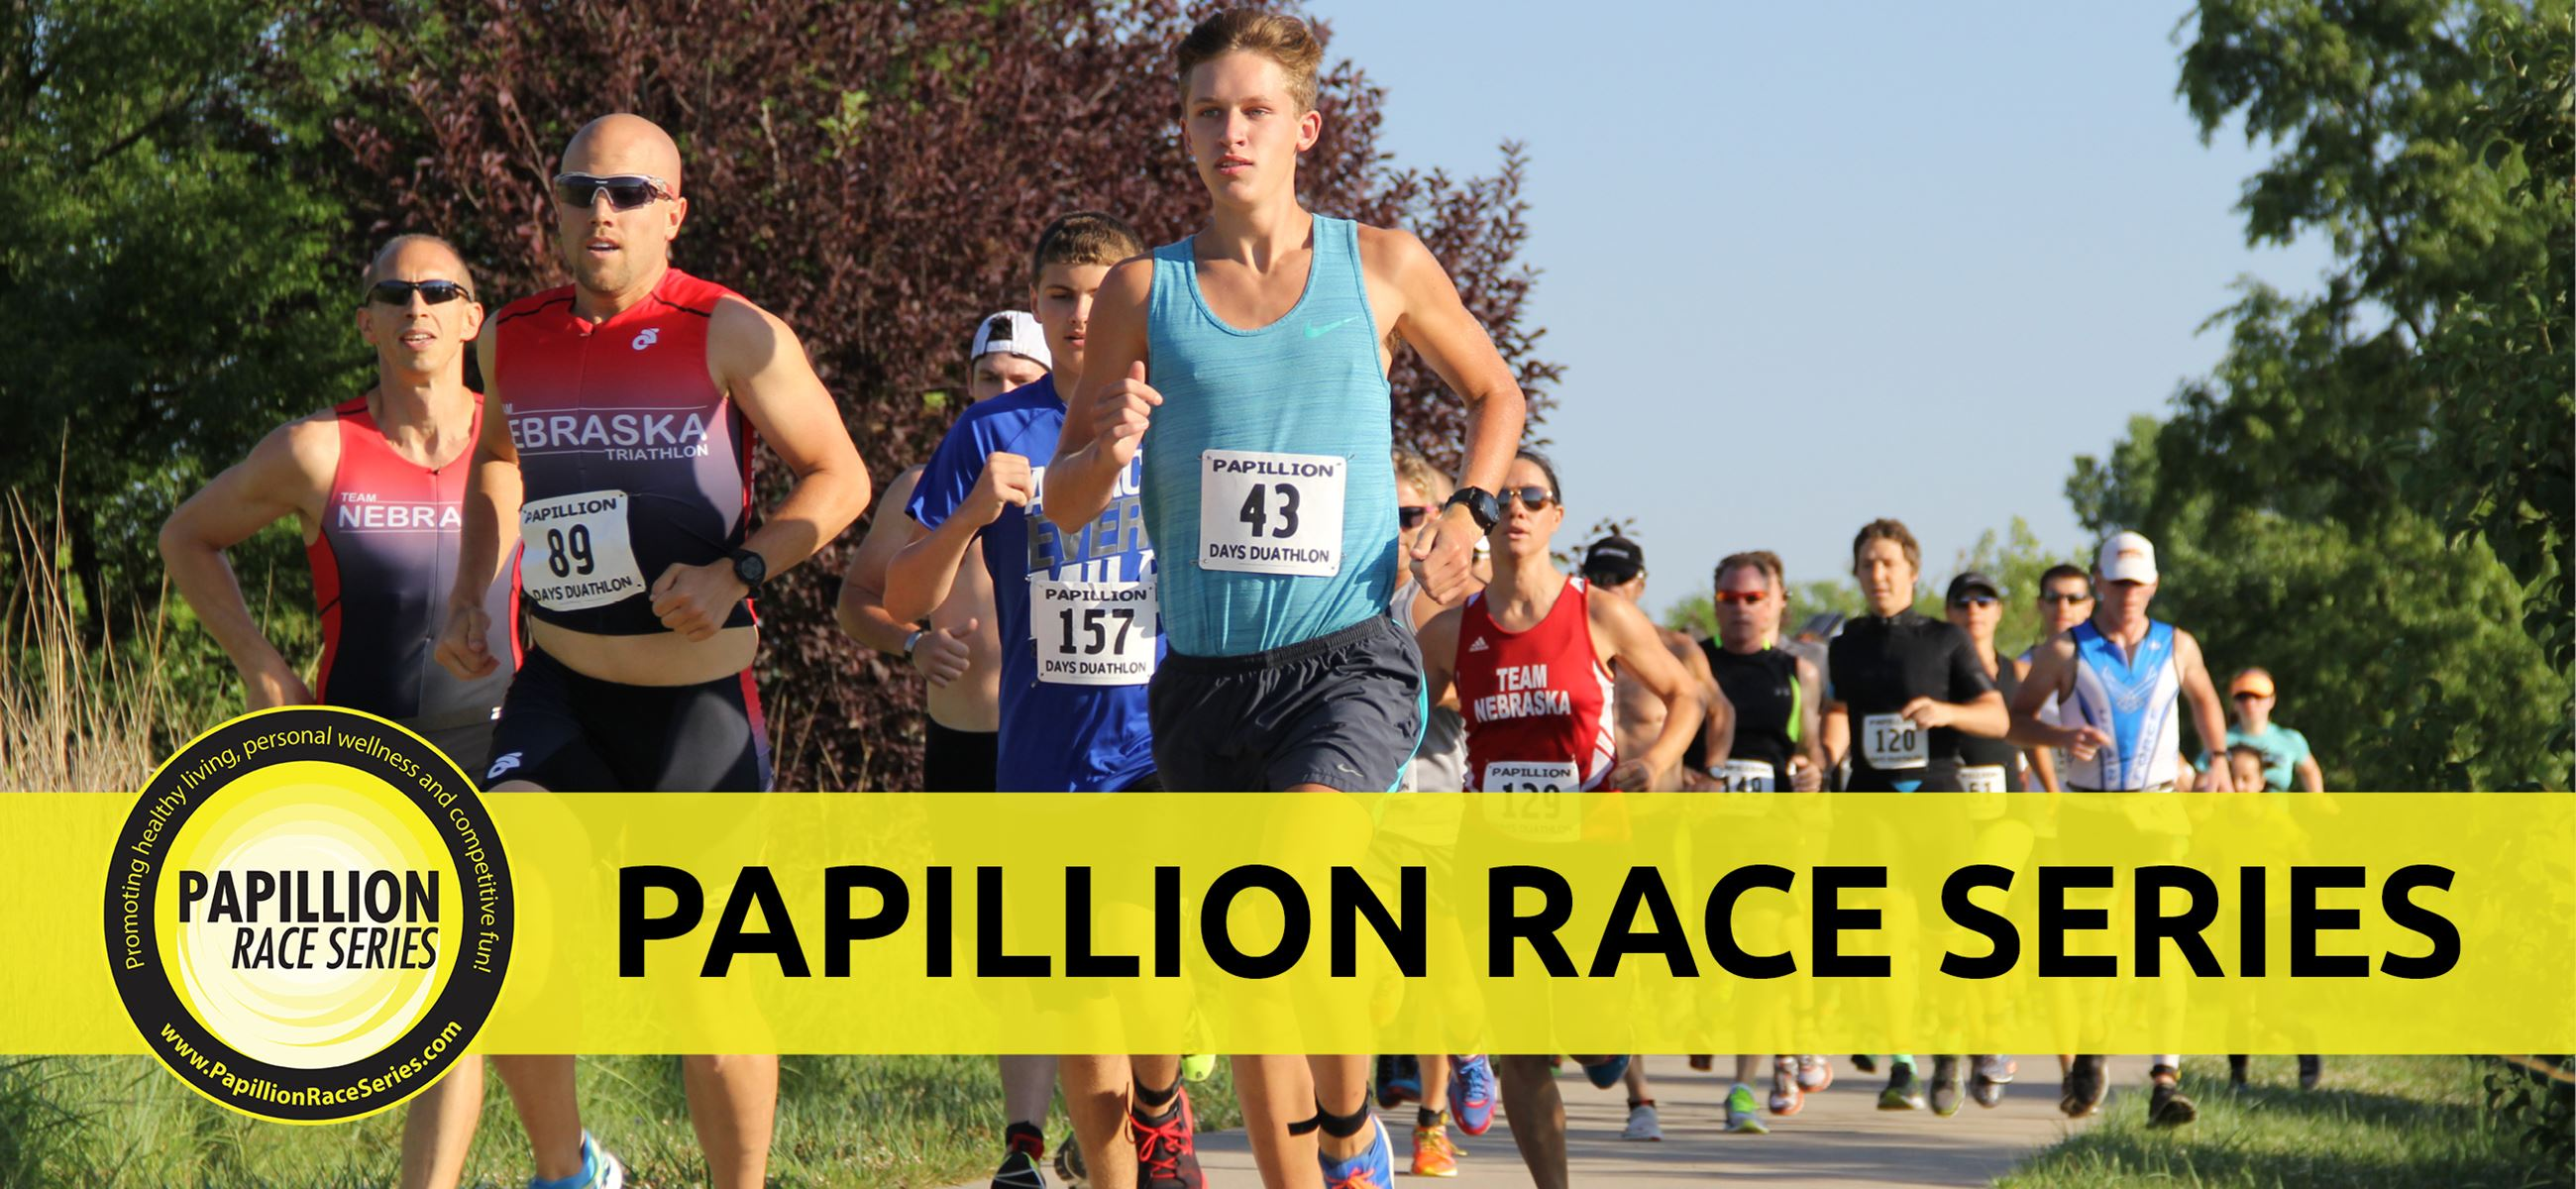 Papillion Race Series